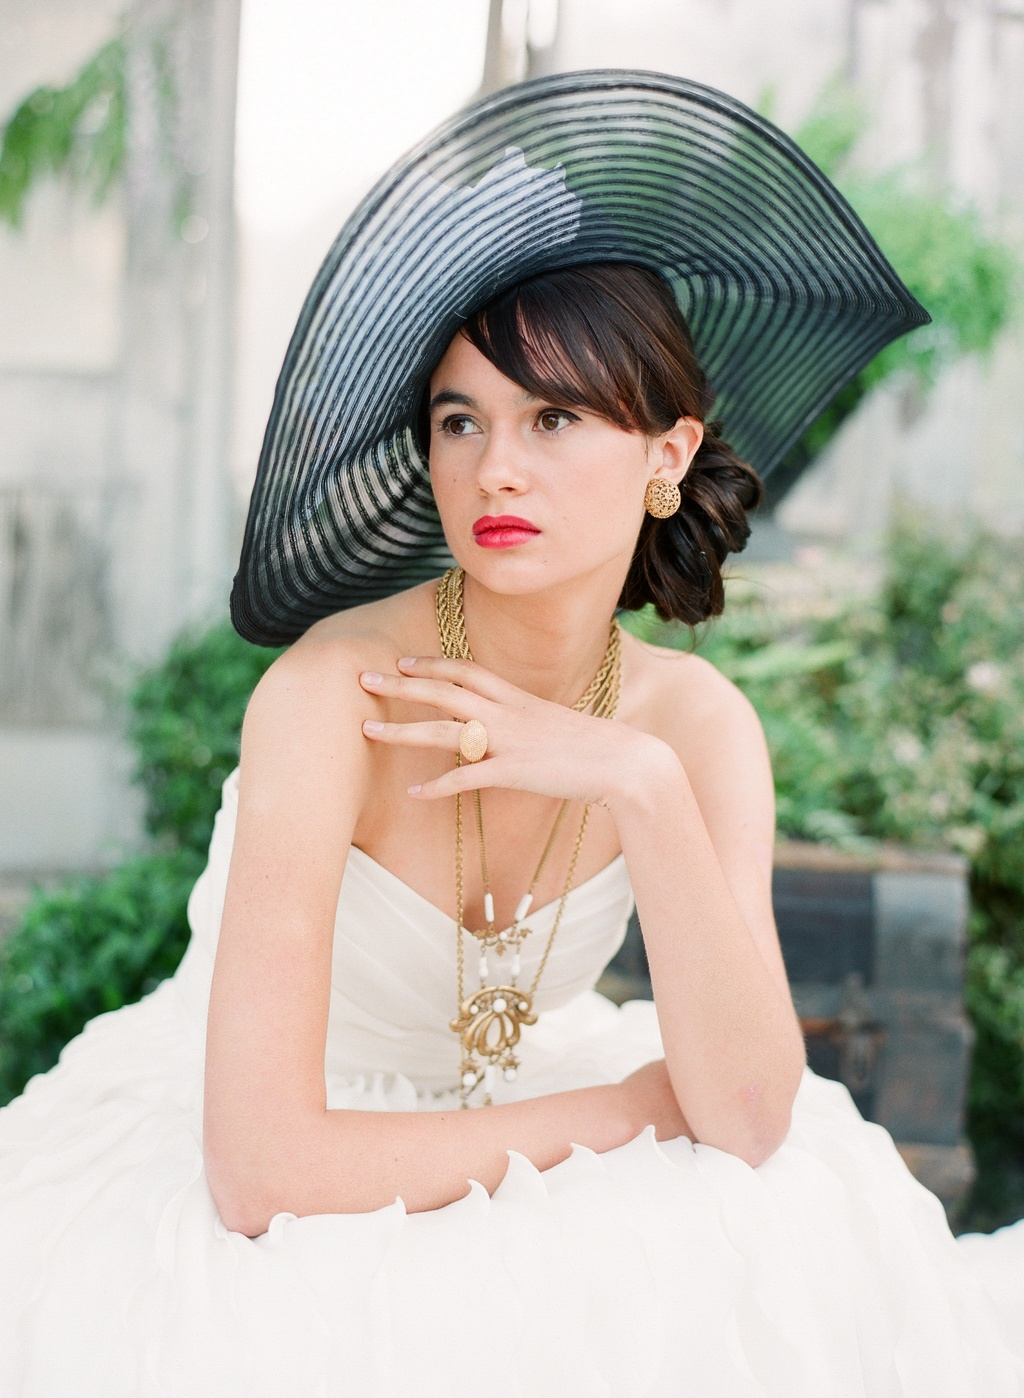 Bright-lips-for-brides-vintage-outdoor-wedding-shoot-2.full